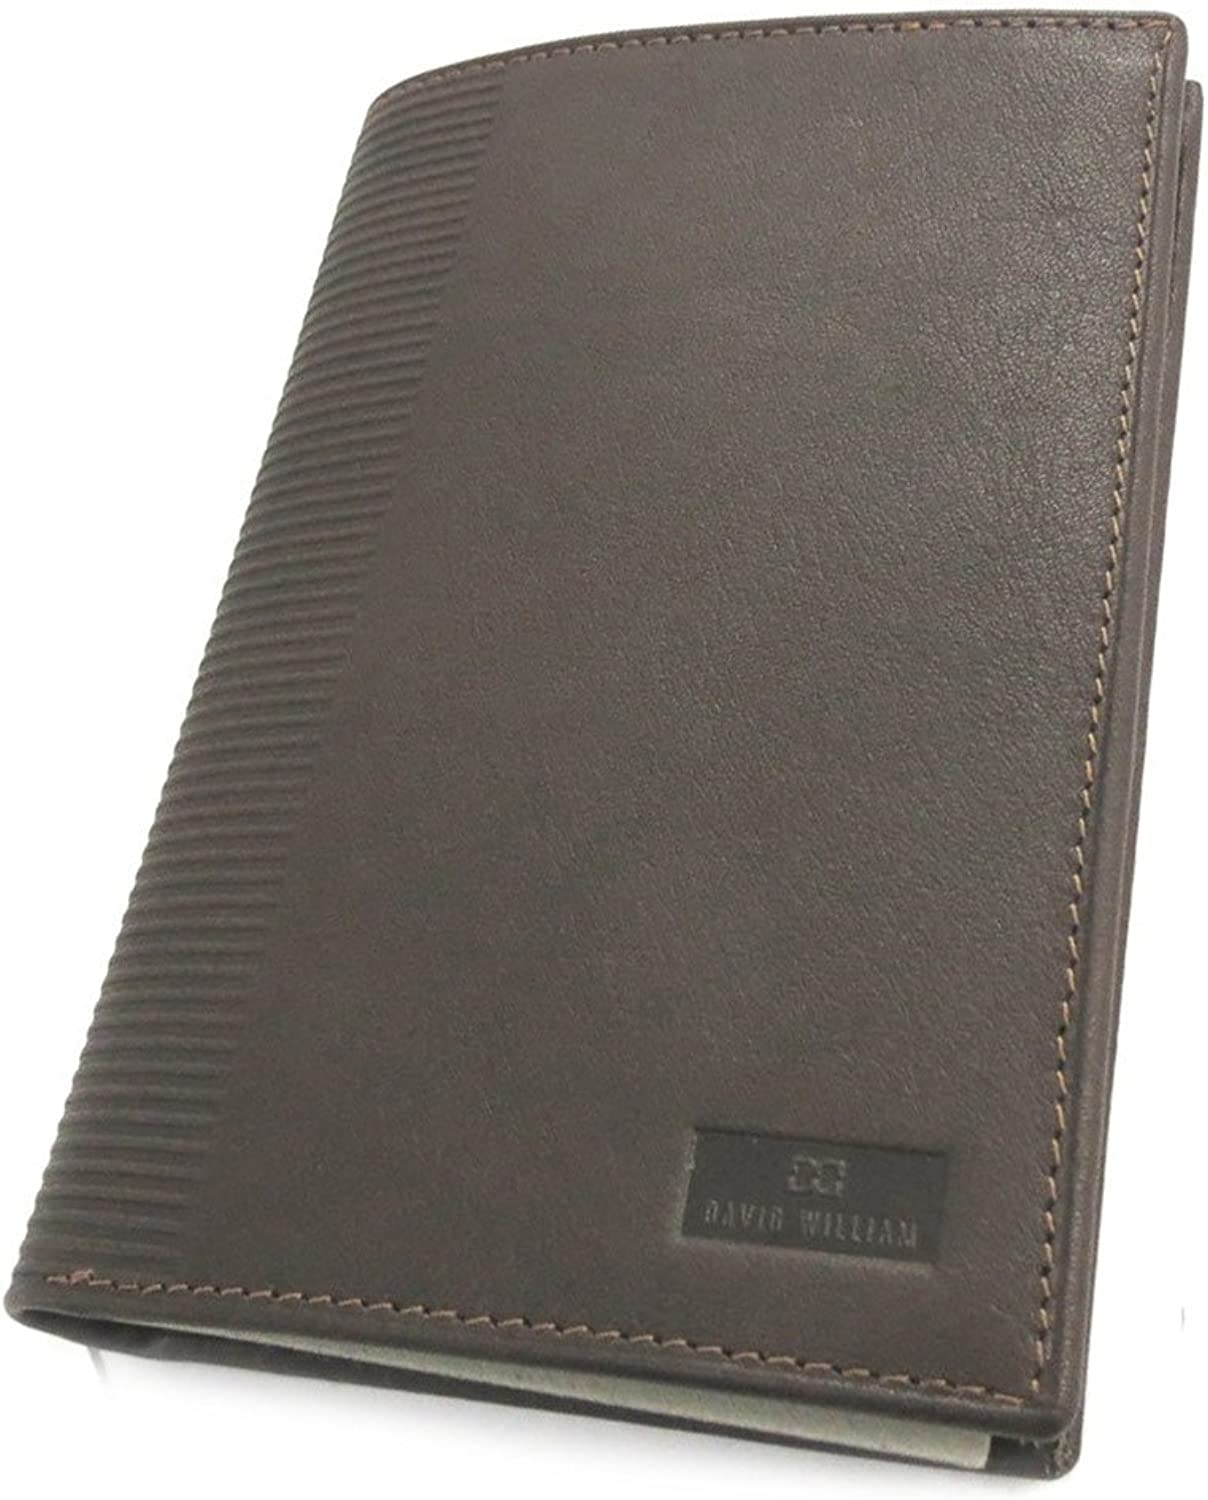 David William [N2458]  Wallet french leather 'David William' brown  2 components (fat cow leather) antipiracy.